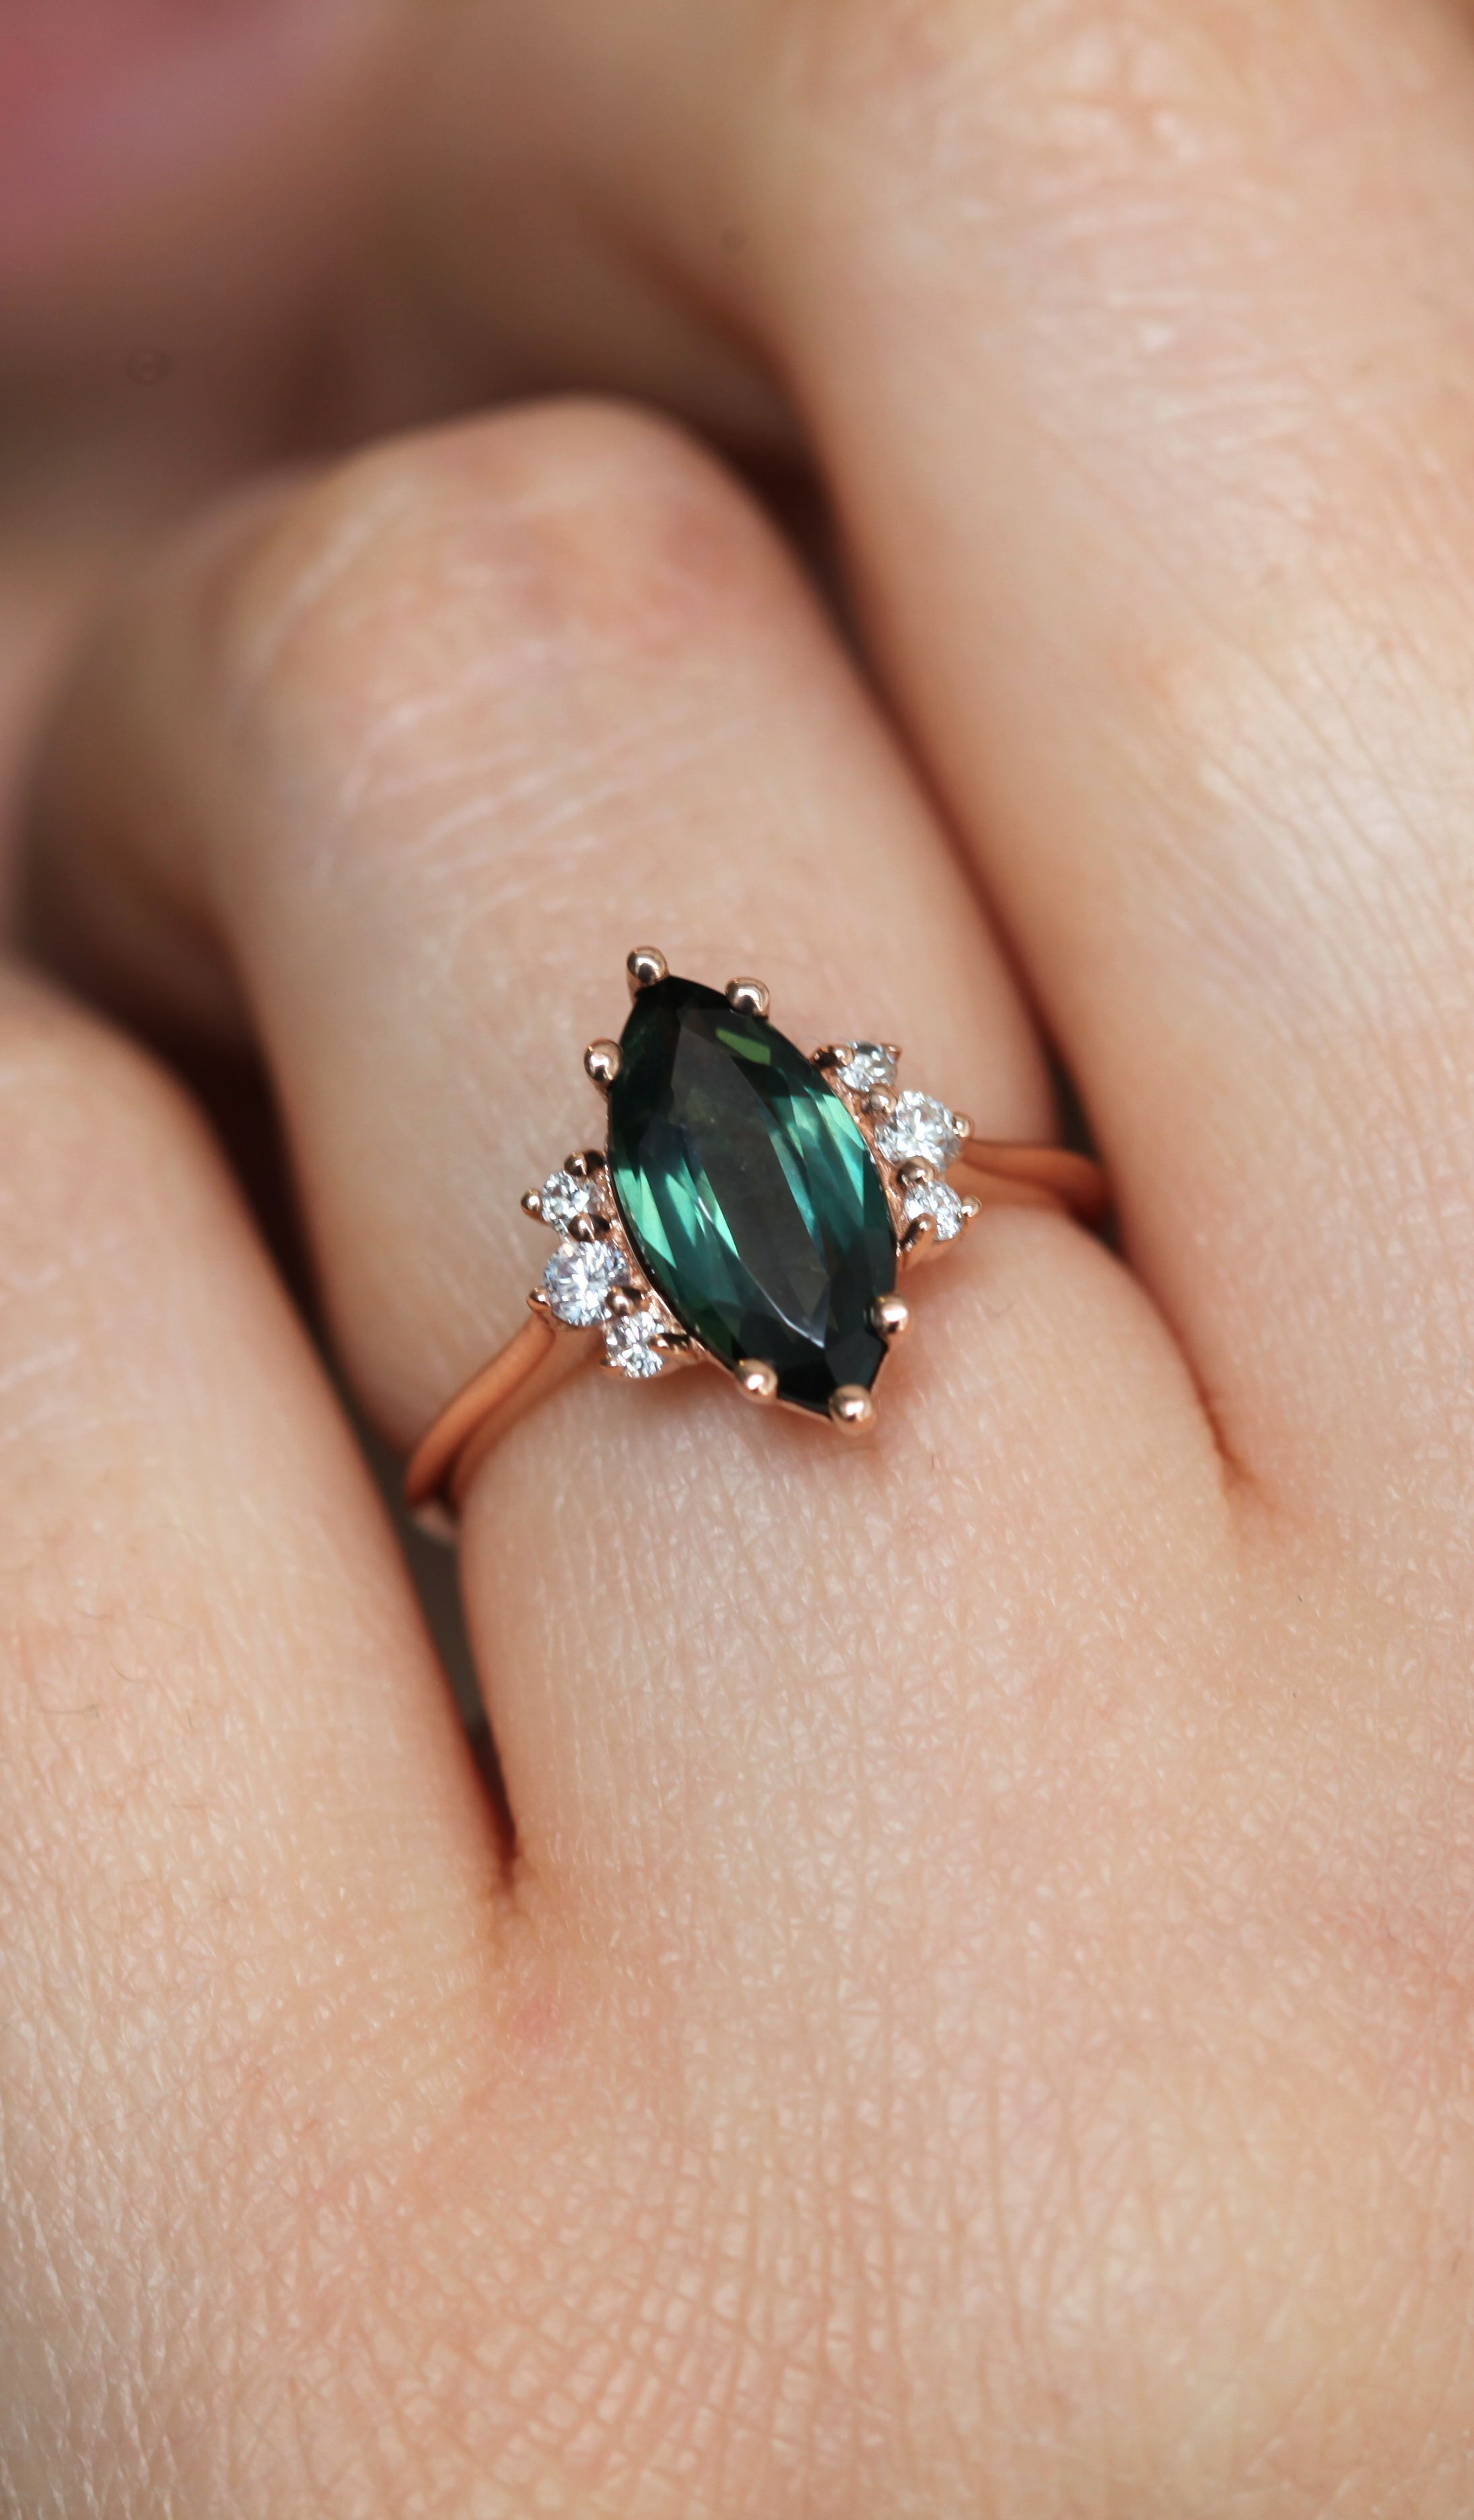 1.5ct Pear Cut Green Emerald Engagement Ring Halo Diamond 14k White Gold Over